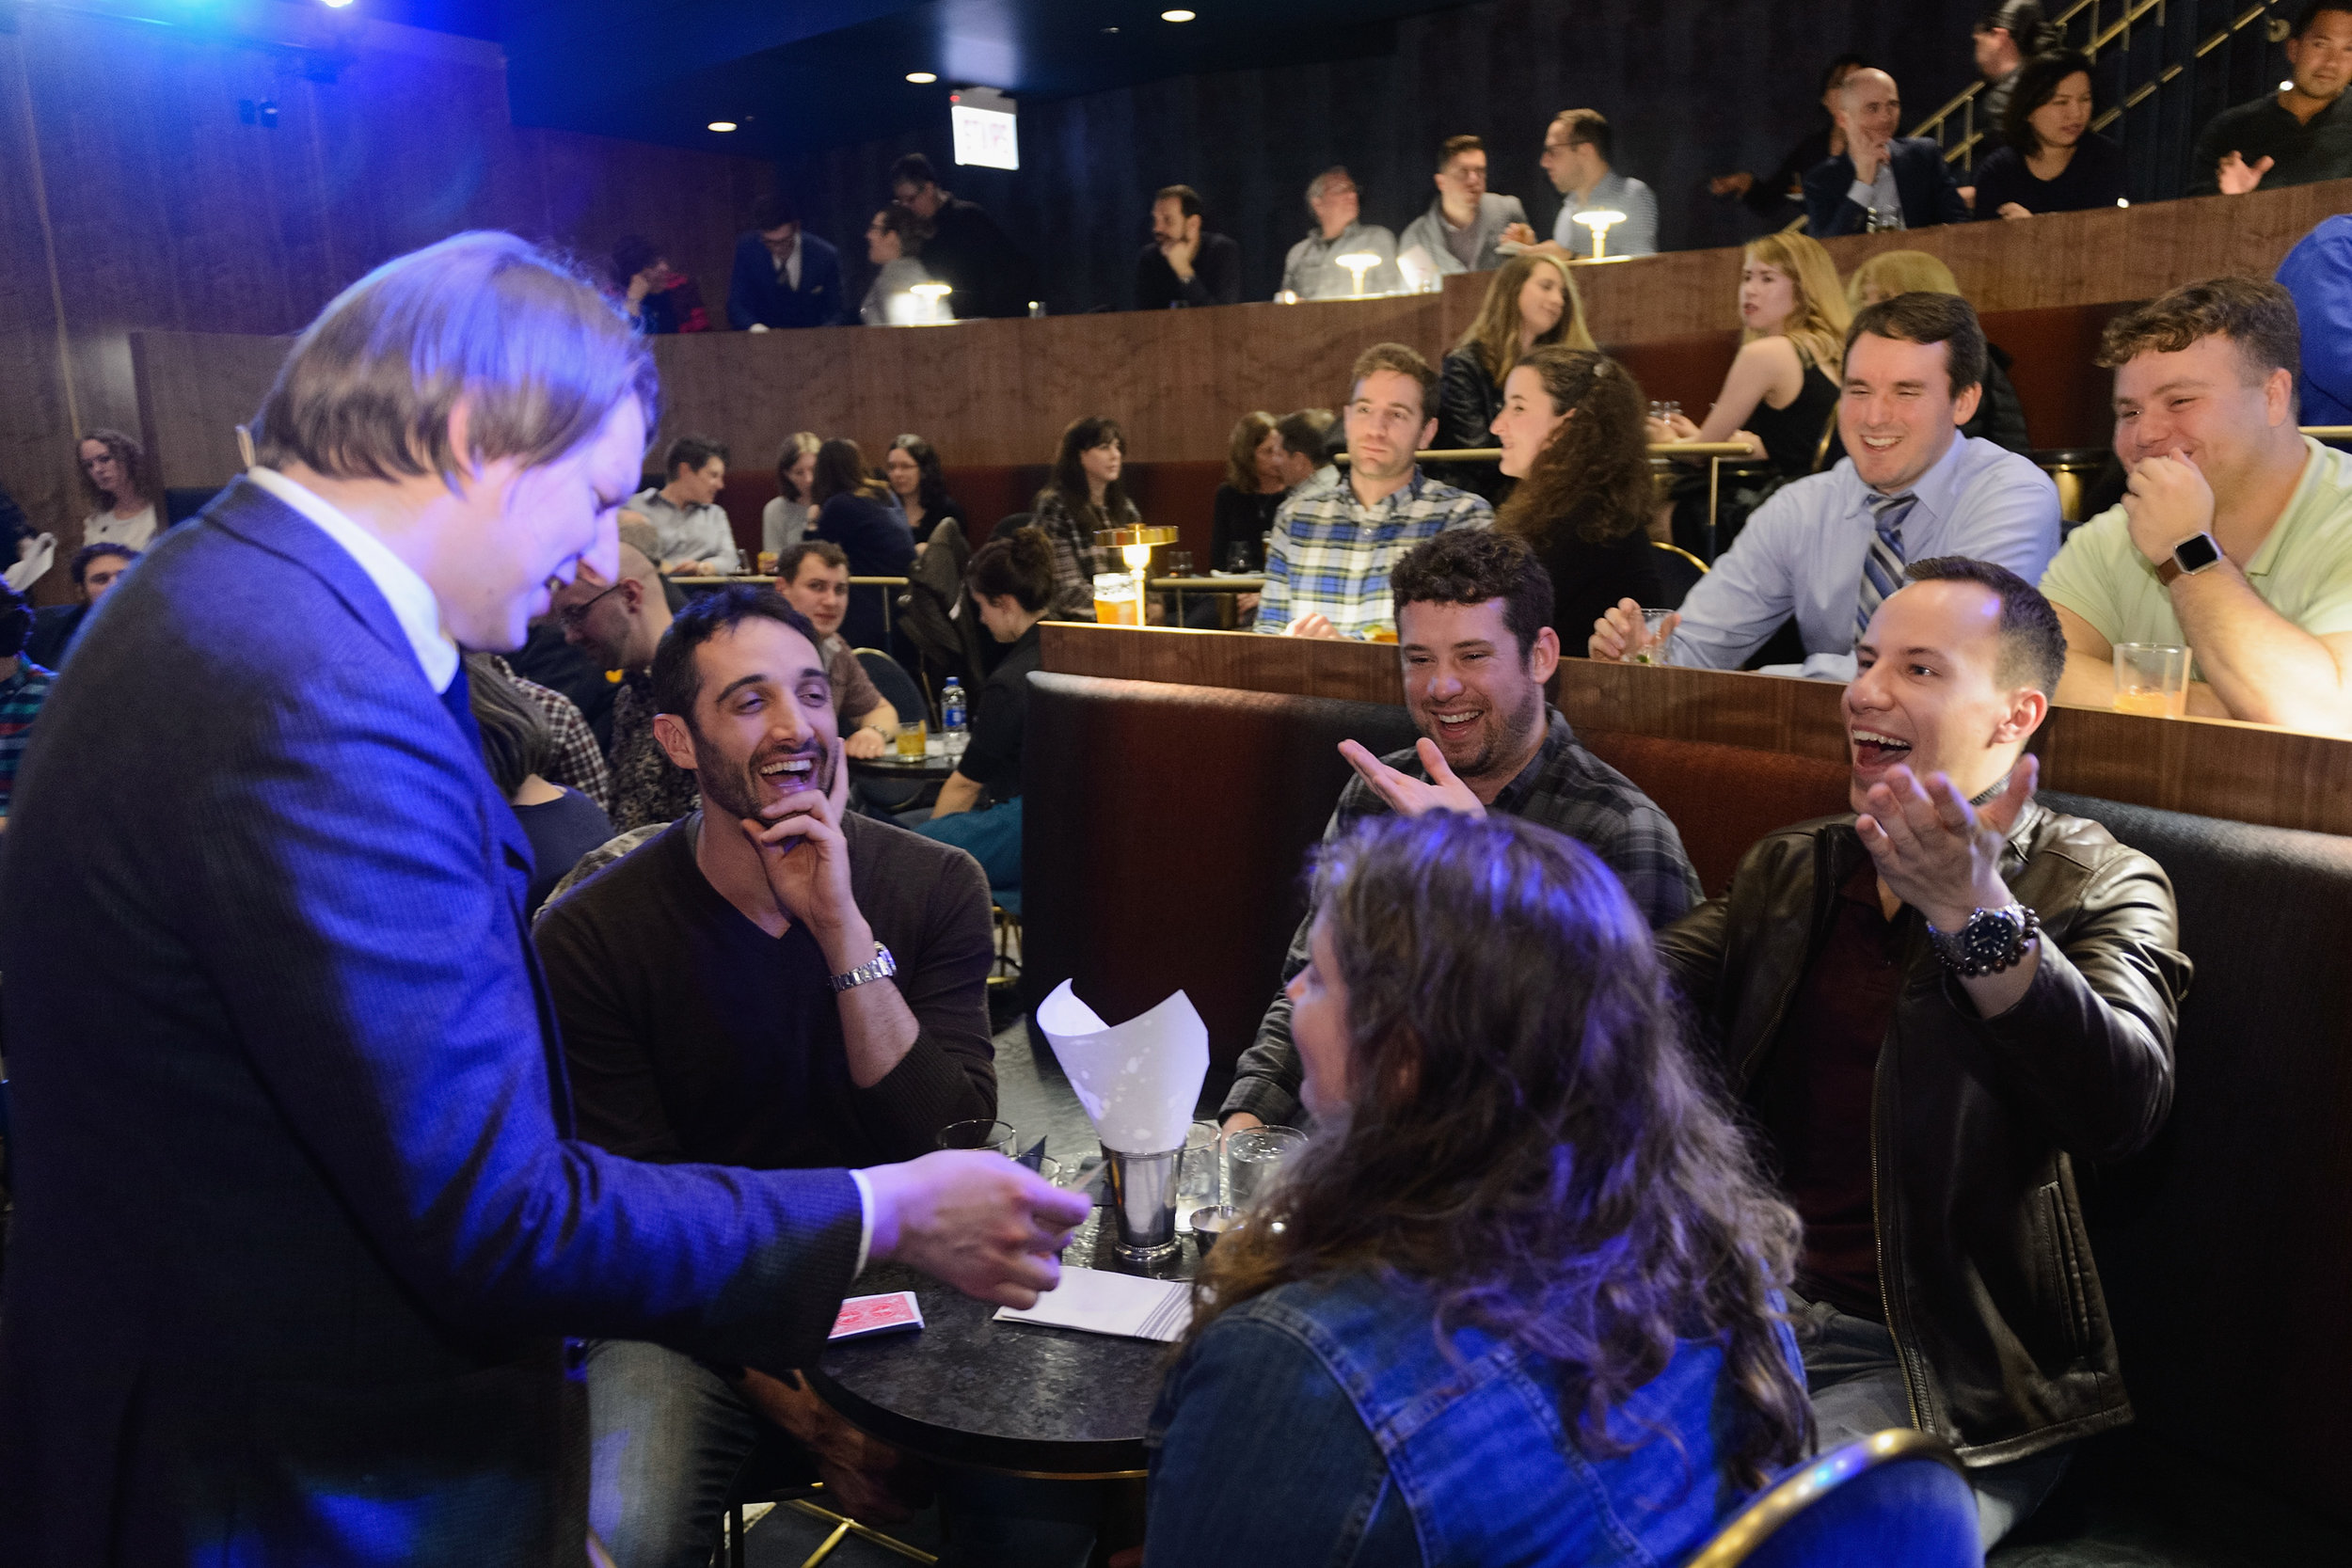 In the press - what people are saying about the Chicago magic lounge